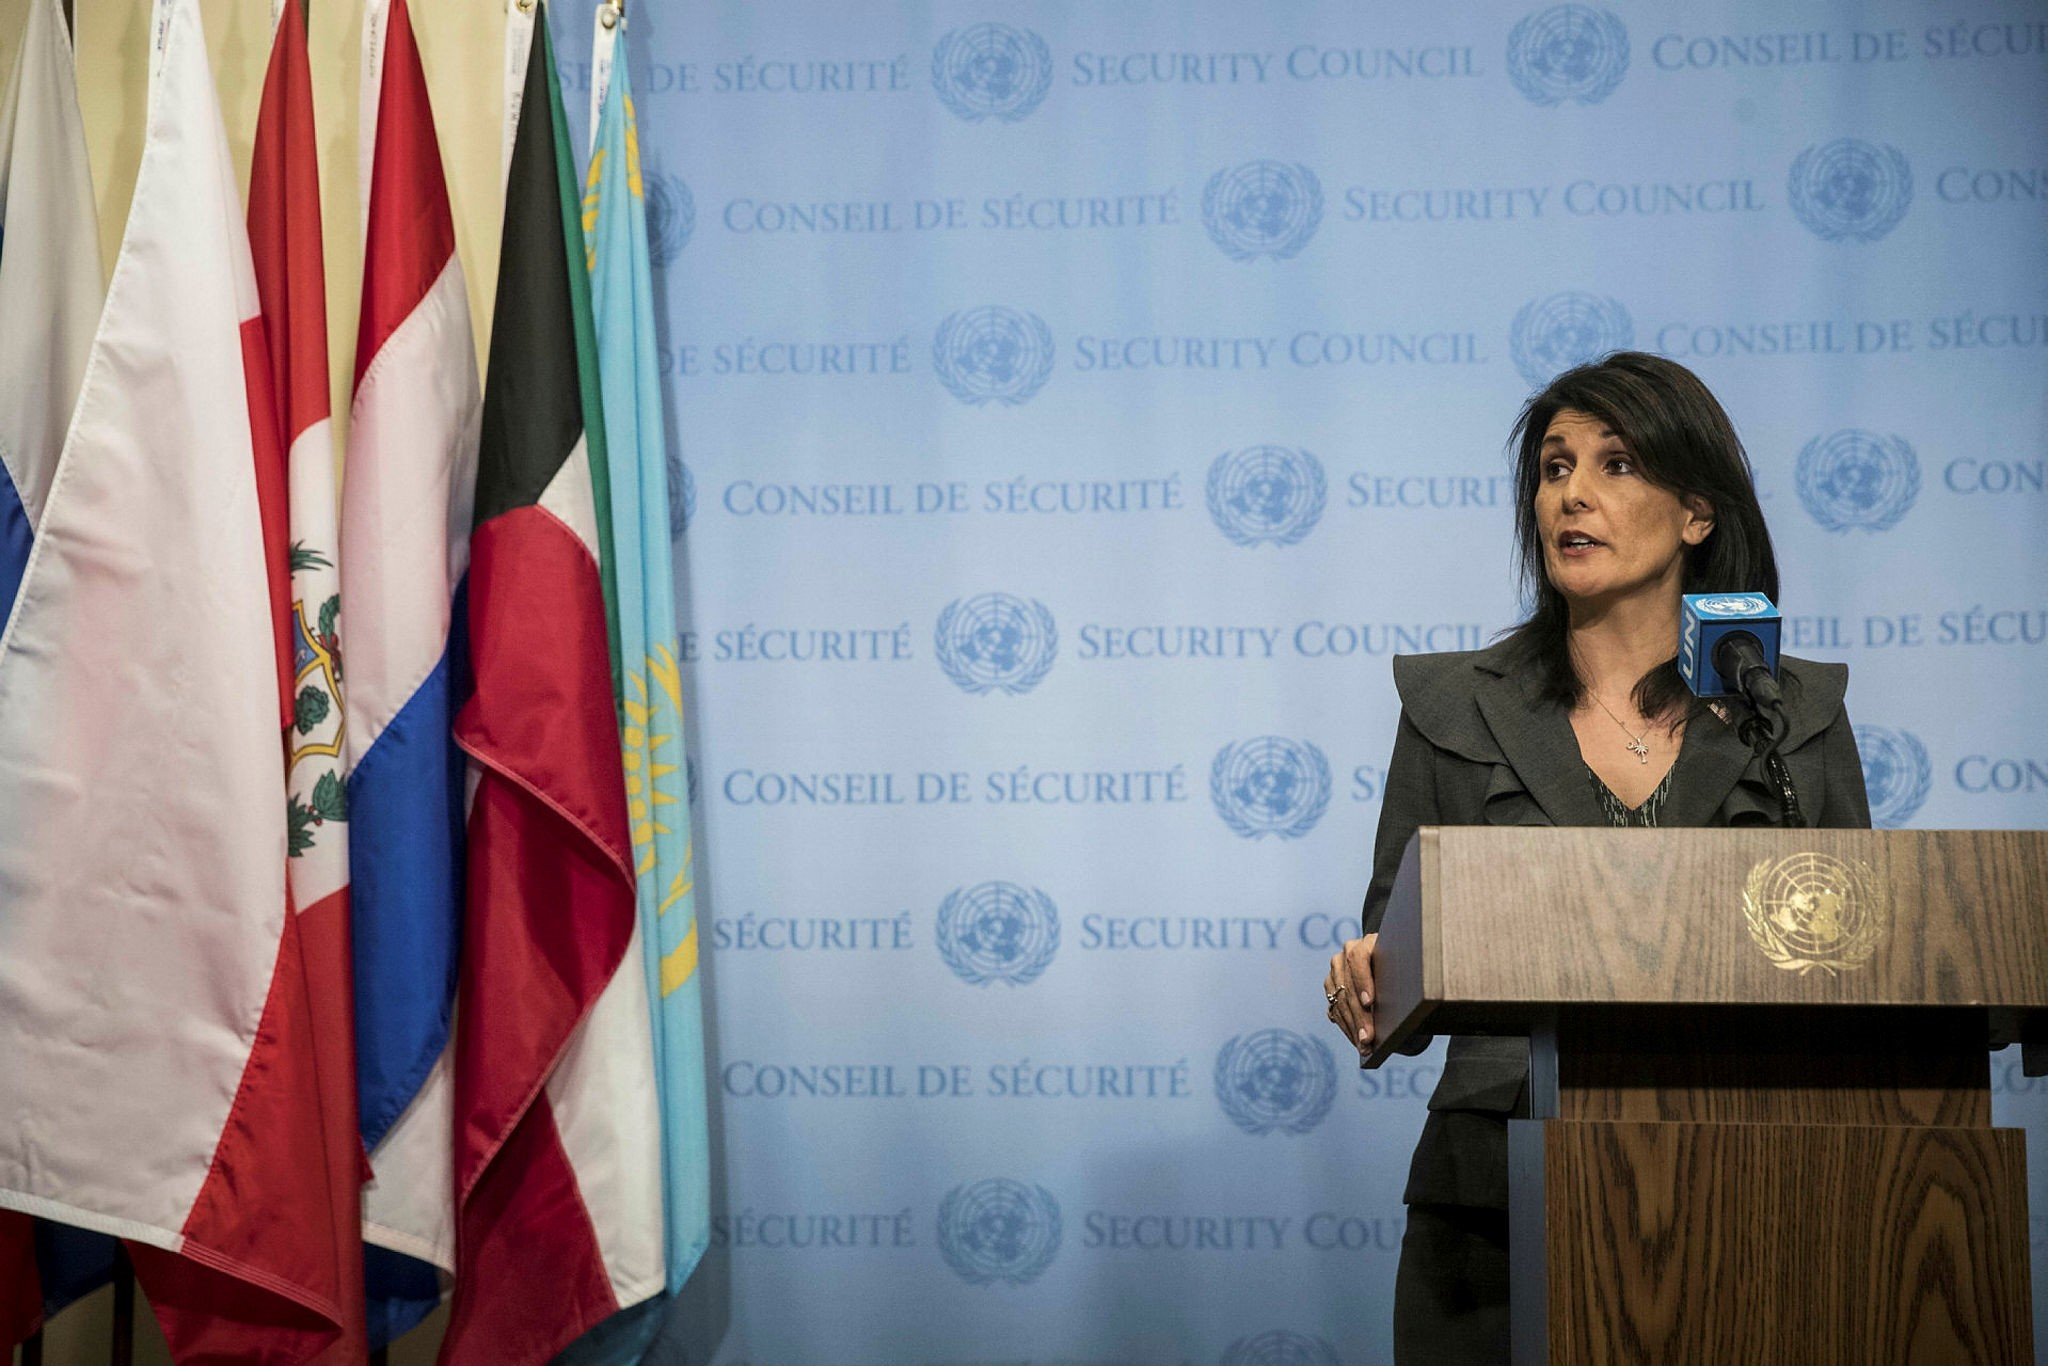 U.S. ambassador to the United Nations Nikki Haley speaks during a brief press availability at United Nations headquarters, January 2, 2018 in New York City. (AFP Photo)